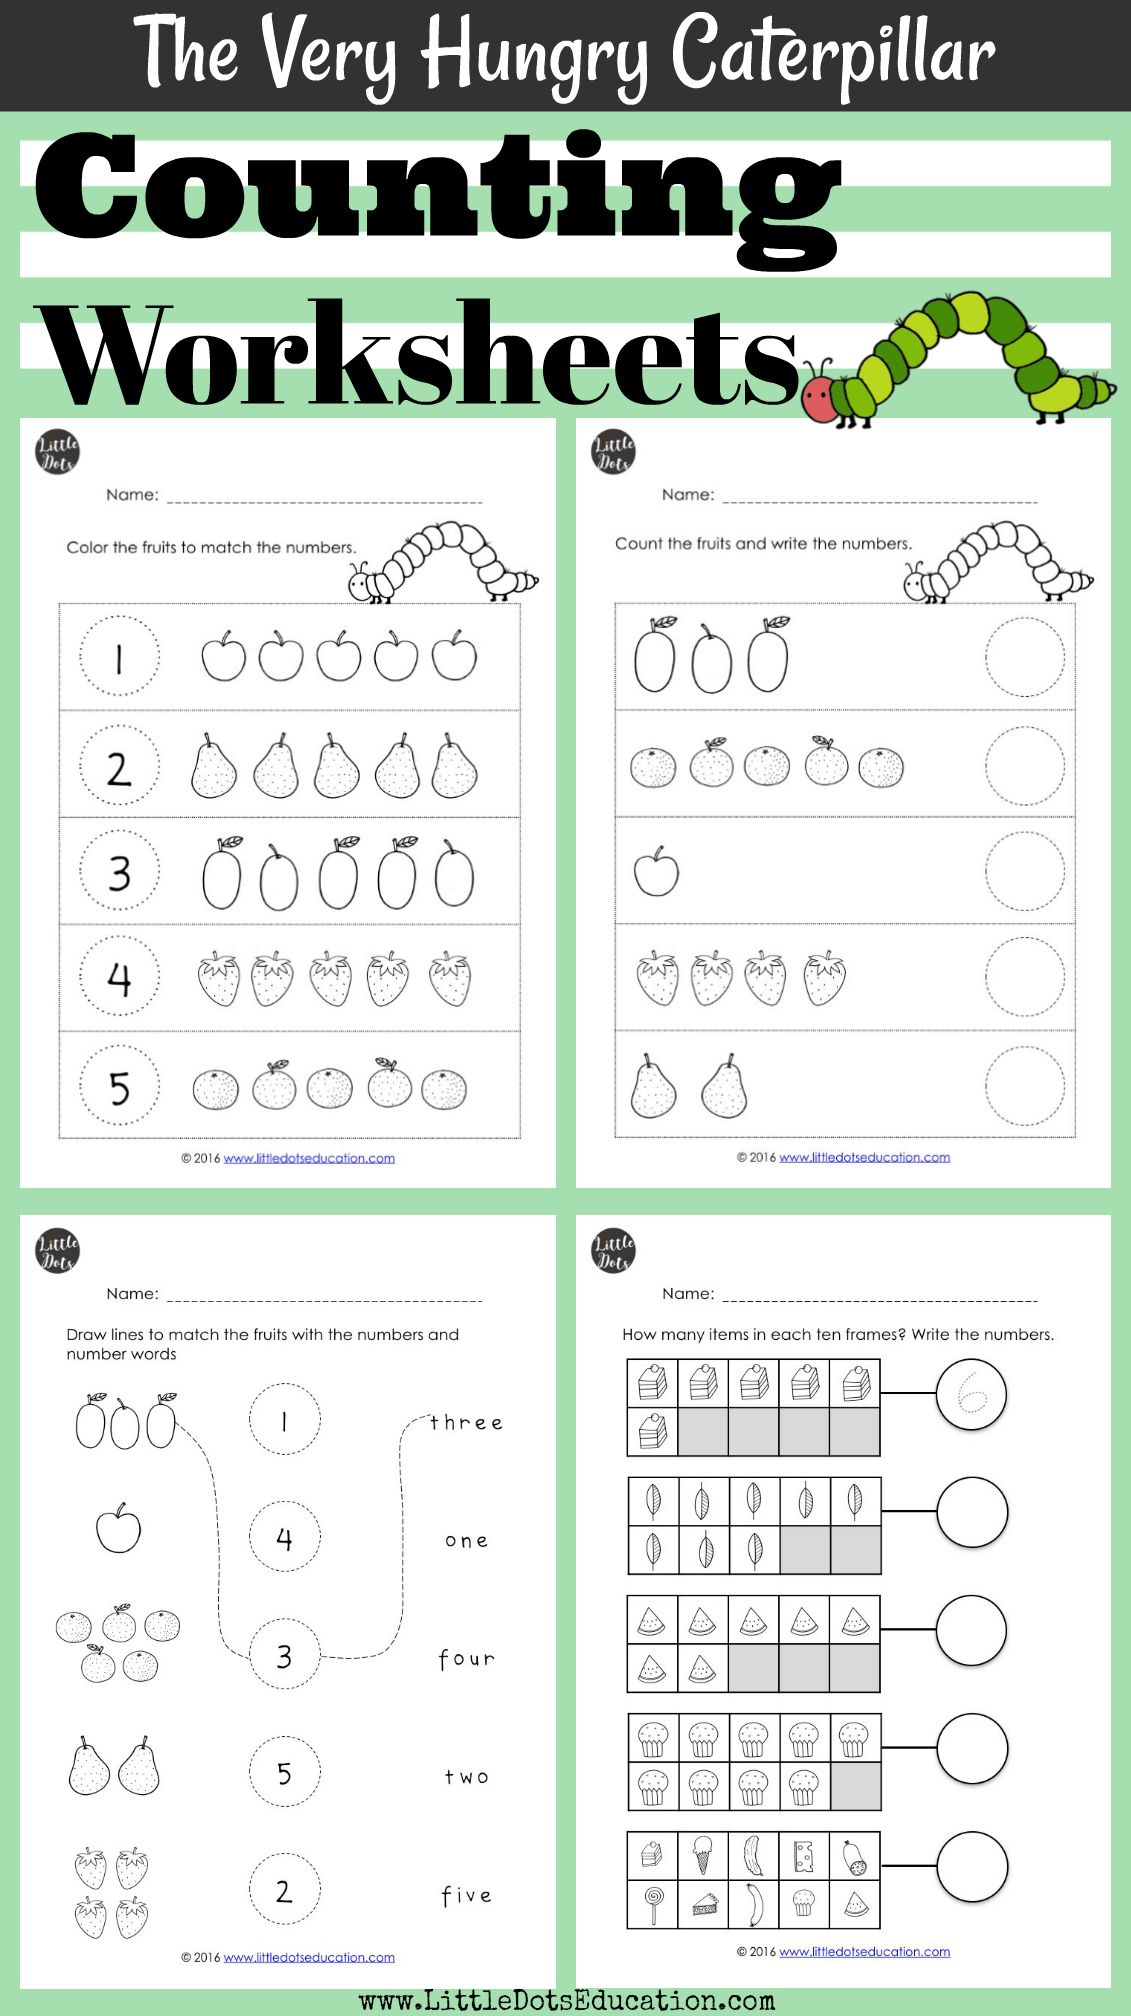 Download The Very Hungry Caterpillar Math Activities On